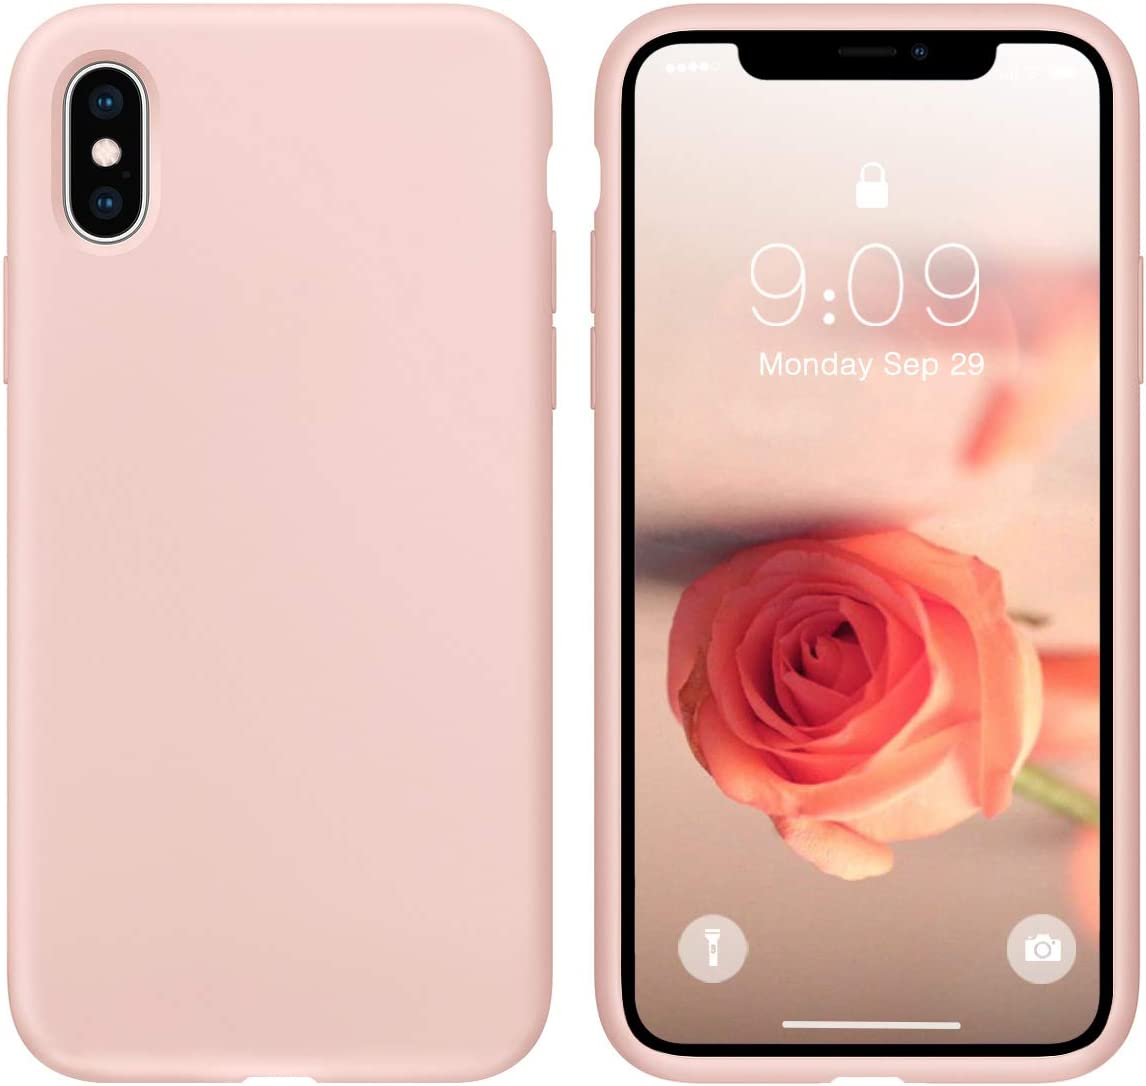 cillen Case for iPhone X/iPhone Xs 5.8 inch Liquid Silicone Gel Rubber Phone Case, Full Body Slim Soft Microfiber Lining Cushion Shockproof Protective Case Compatible with iPhone X/iPhone Xs,Pink Sand